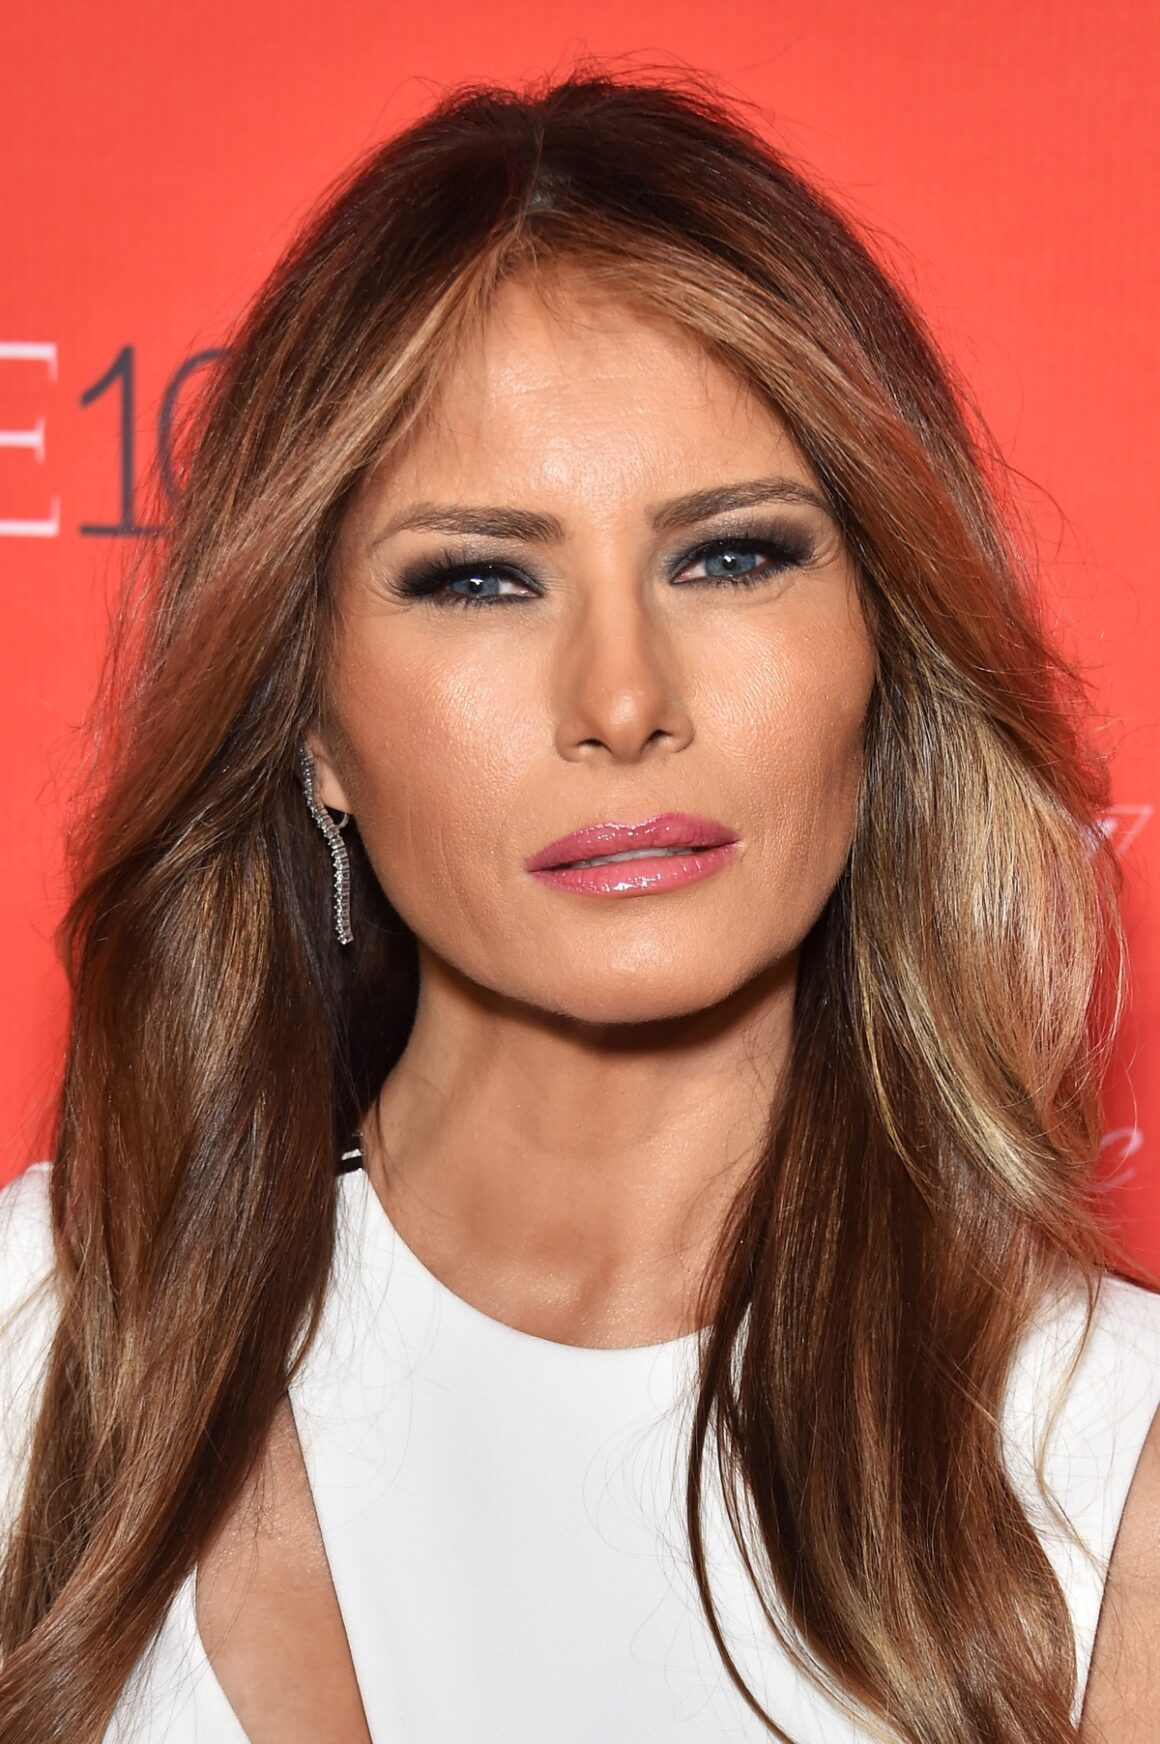 Melania Trump 2016 Time 100 Gala, Time's Most Influential People In The World - Red Carpet